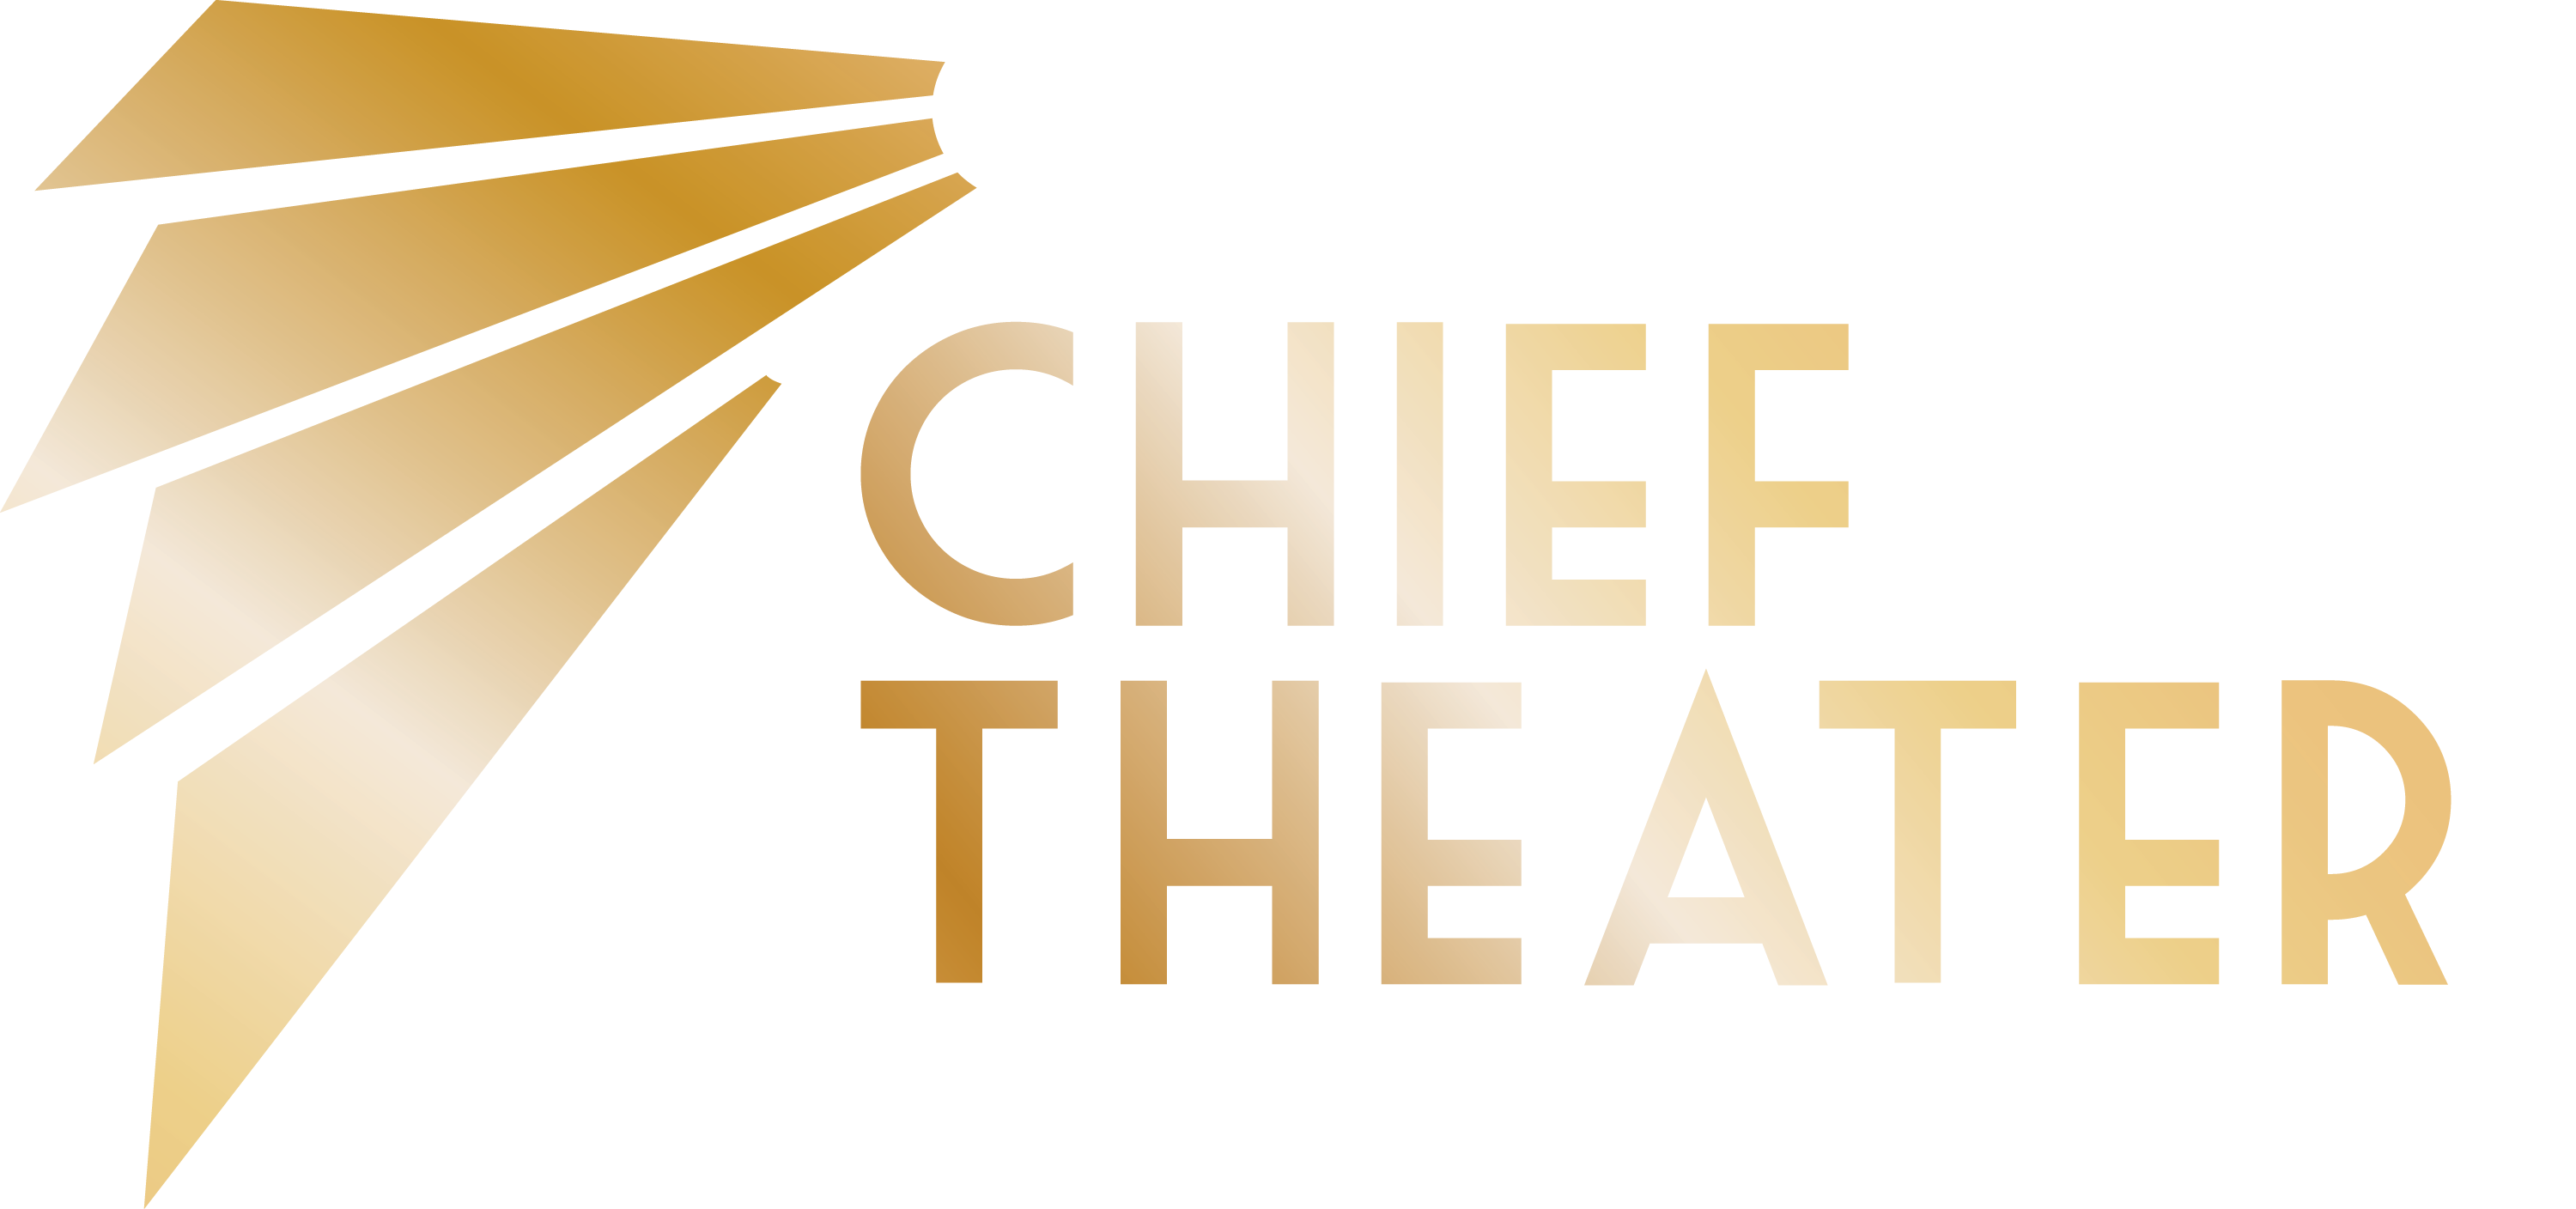 Tickets for Donations to the Chief Theater from ShowClix